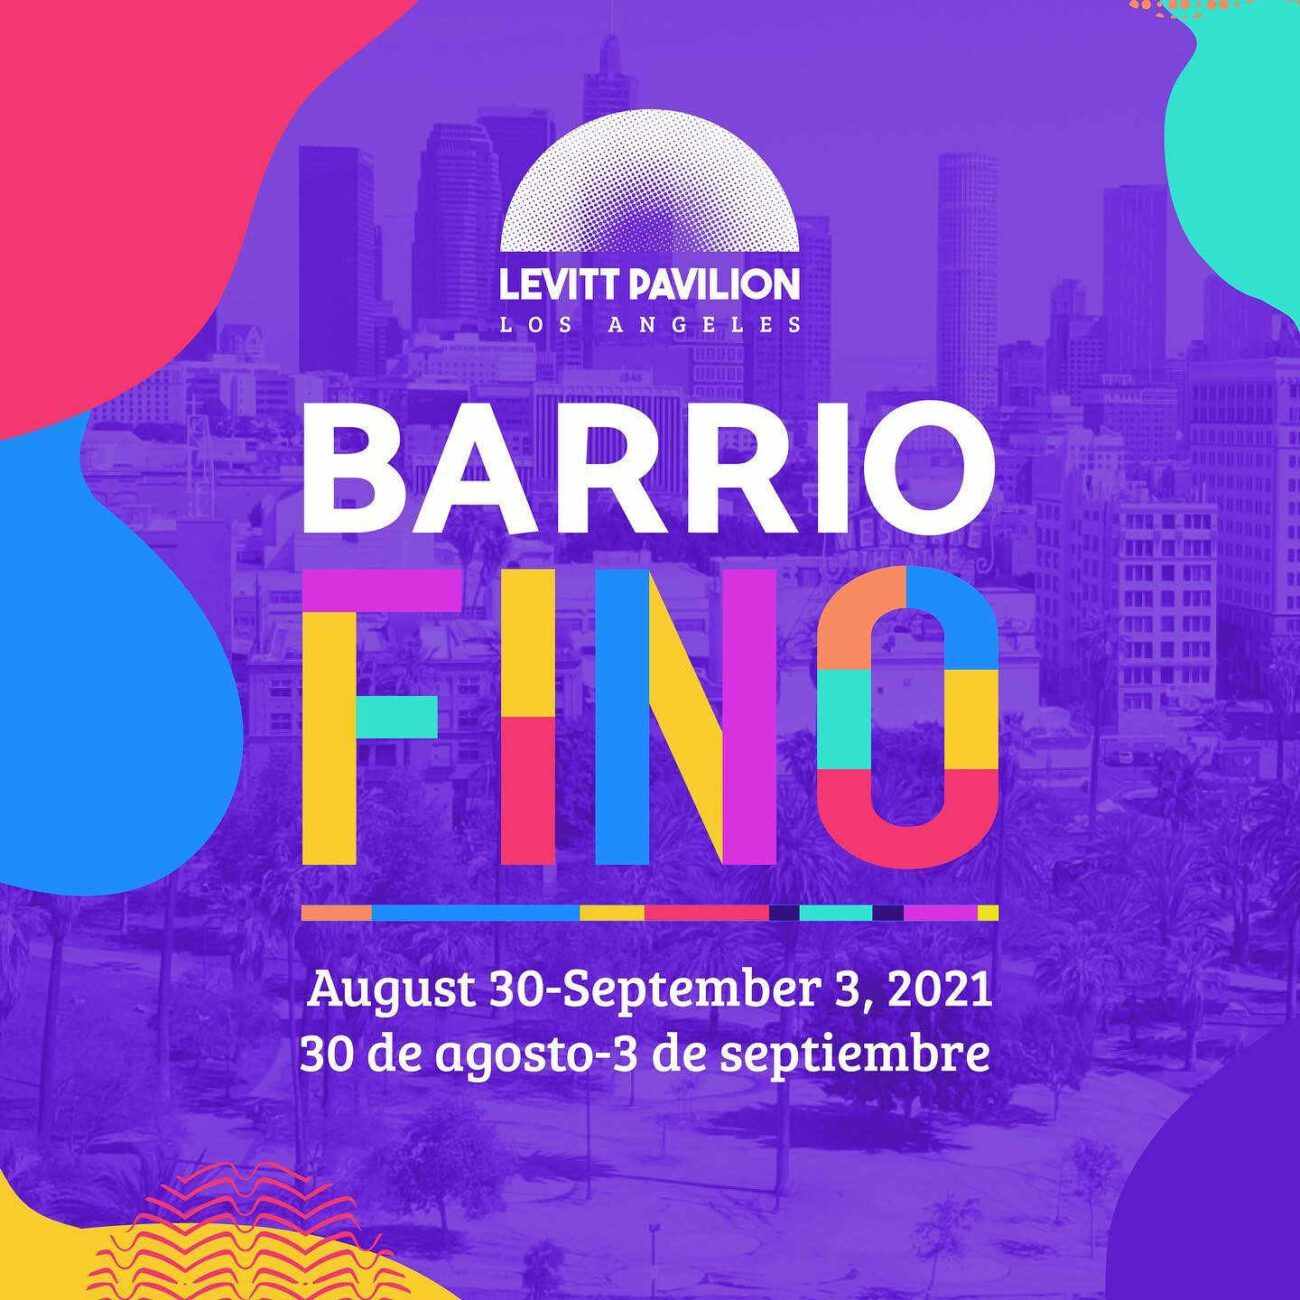 Premiering on Levitt LA's YouTube channel, 'Barrio Fino' will be a five-part docuseries highlighting the communities surrounding MacArthur Park. Check it out!